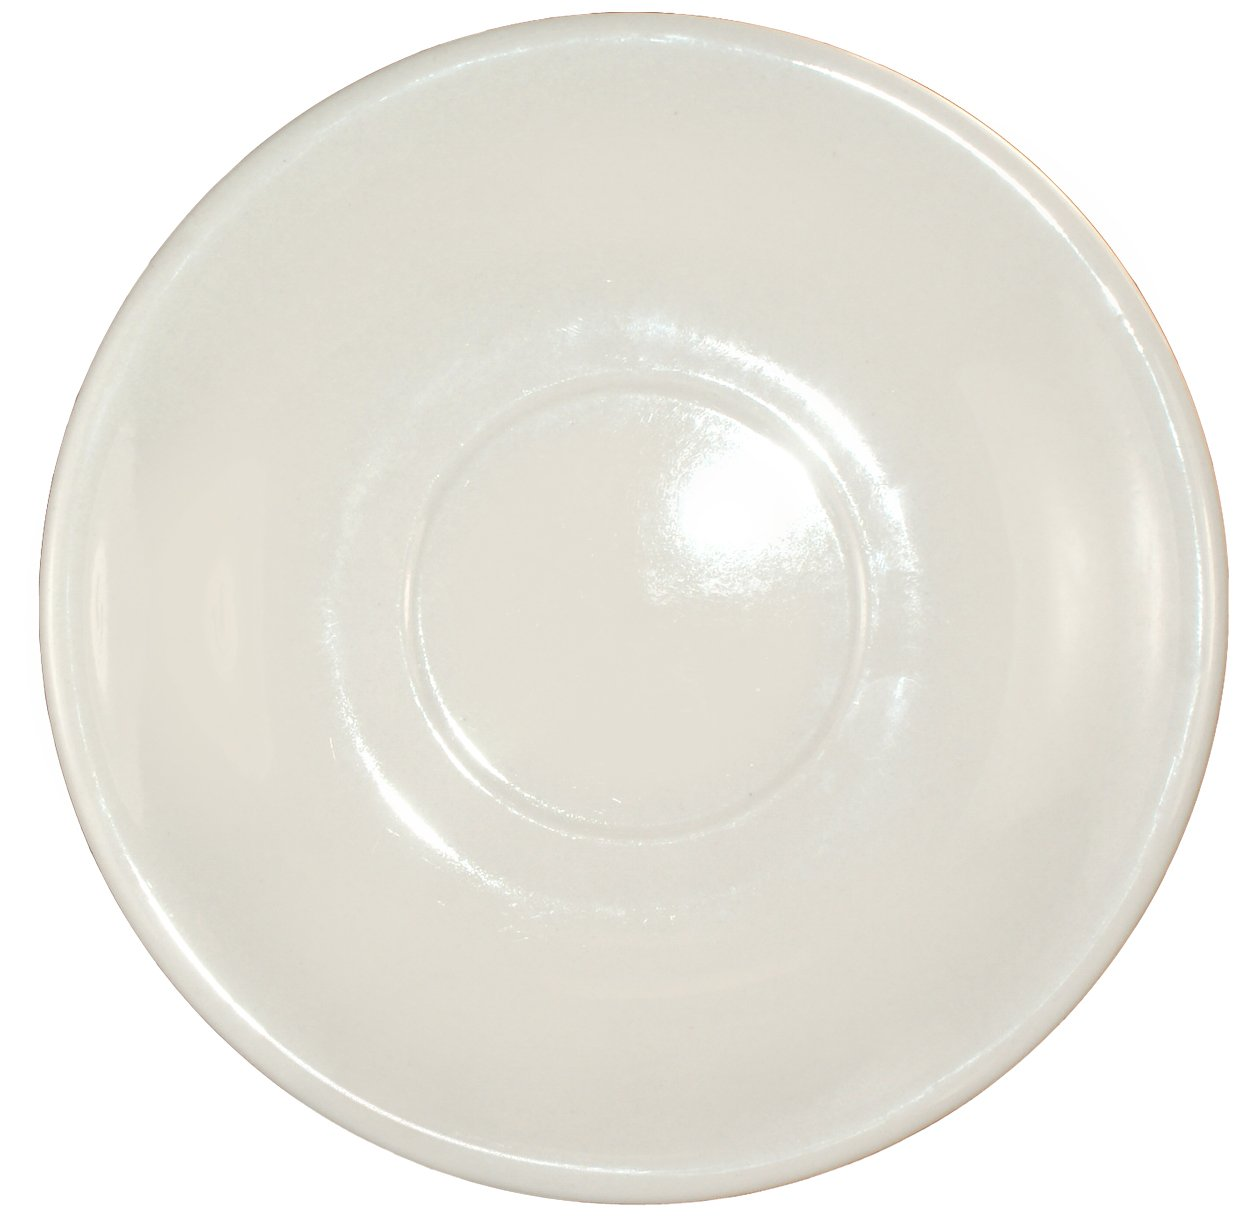 ITI-RO-36 Roma 5.188-Inch After Dinner Saucer, 36-Piece, American White